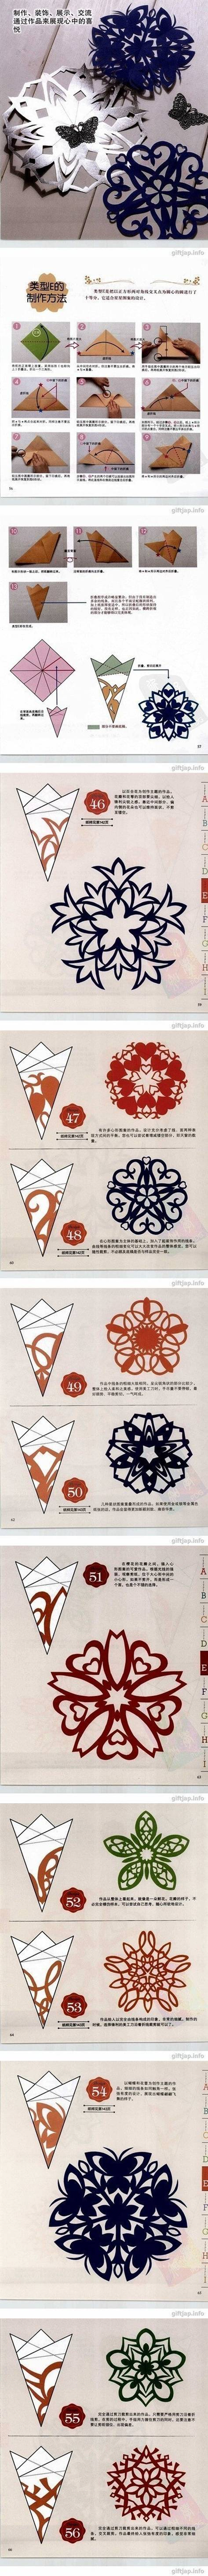 DIY Chinese Paper Cutting